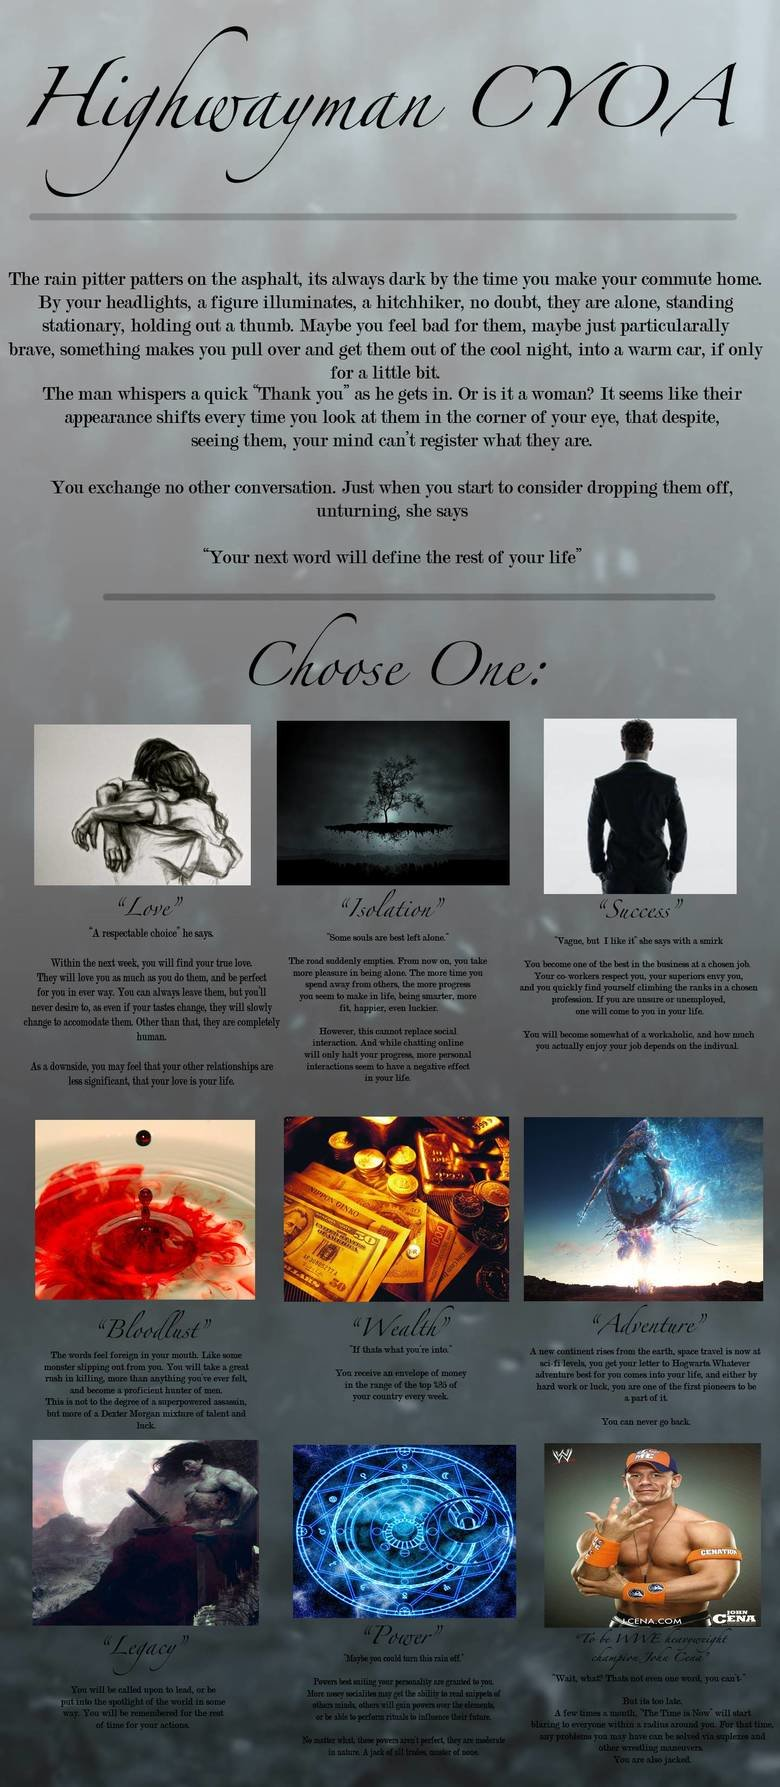 Highwayman CYOA stolen from /tg/. There's only 1 choice. John Cena.. The rain pitter patters on the asphalt, its always dark © the time you make commute home. B